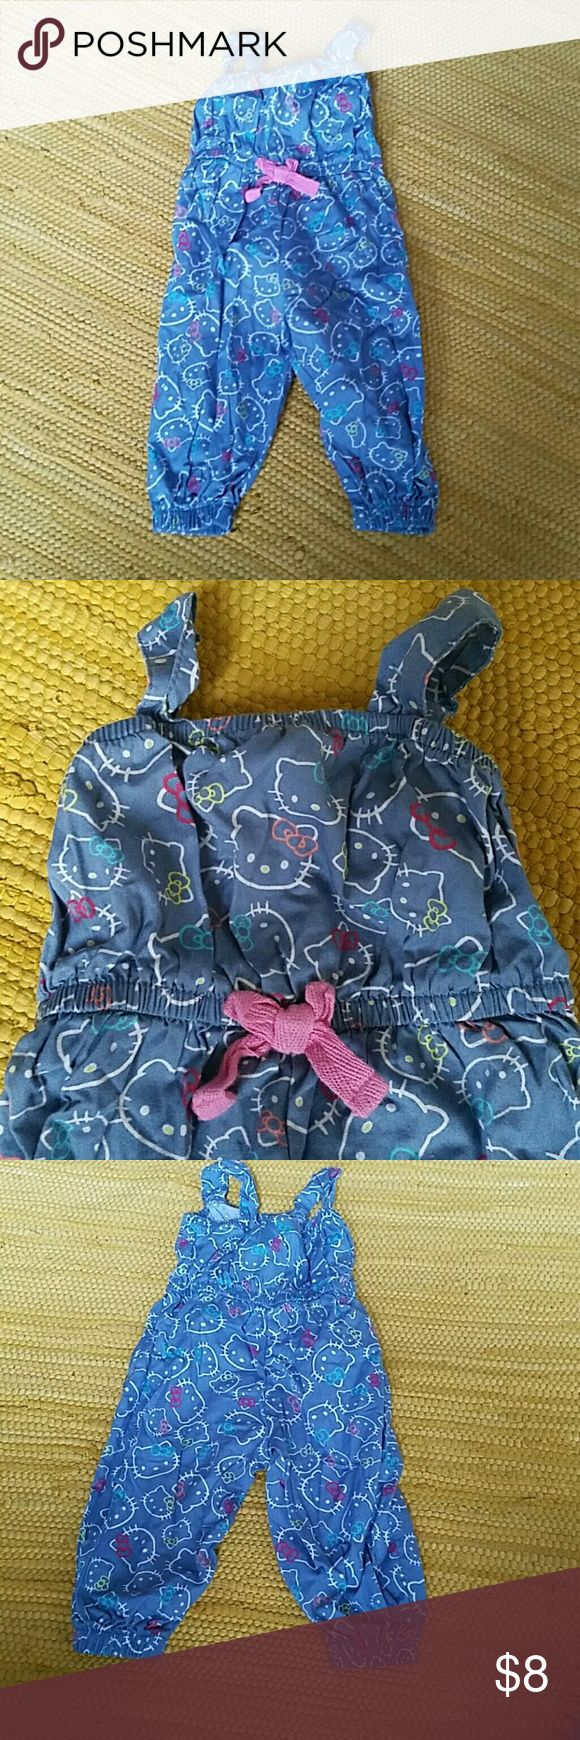 f872b9987ef Hello Kitty Romper Worn once by my daughter who HATED being in a Romper.  This